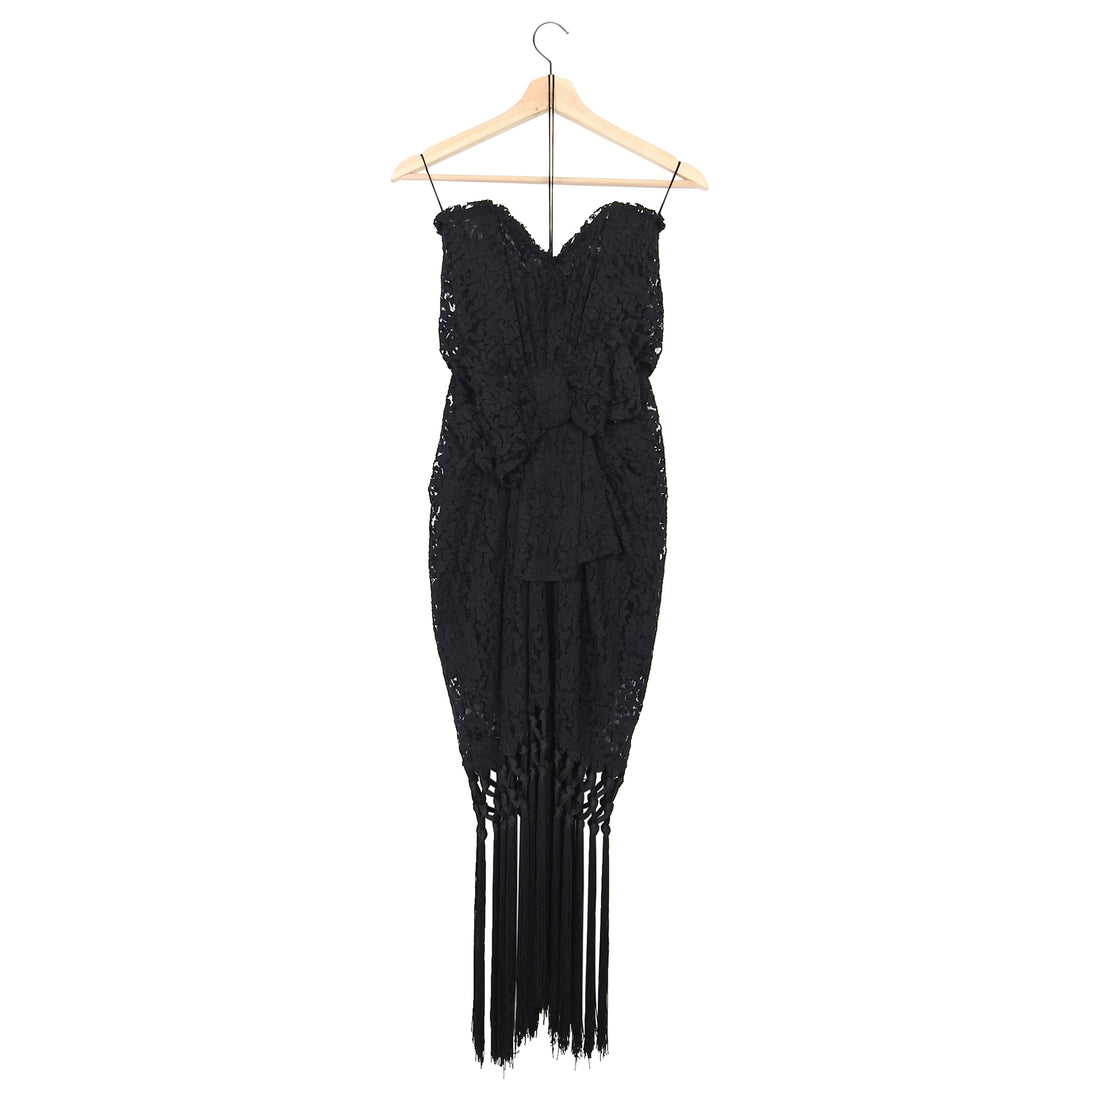 Dolce & Gabbana Black Strapless Lace Fringe Cocktail Dress – IT42 / USA 6